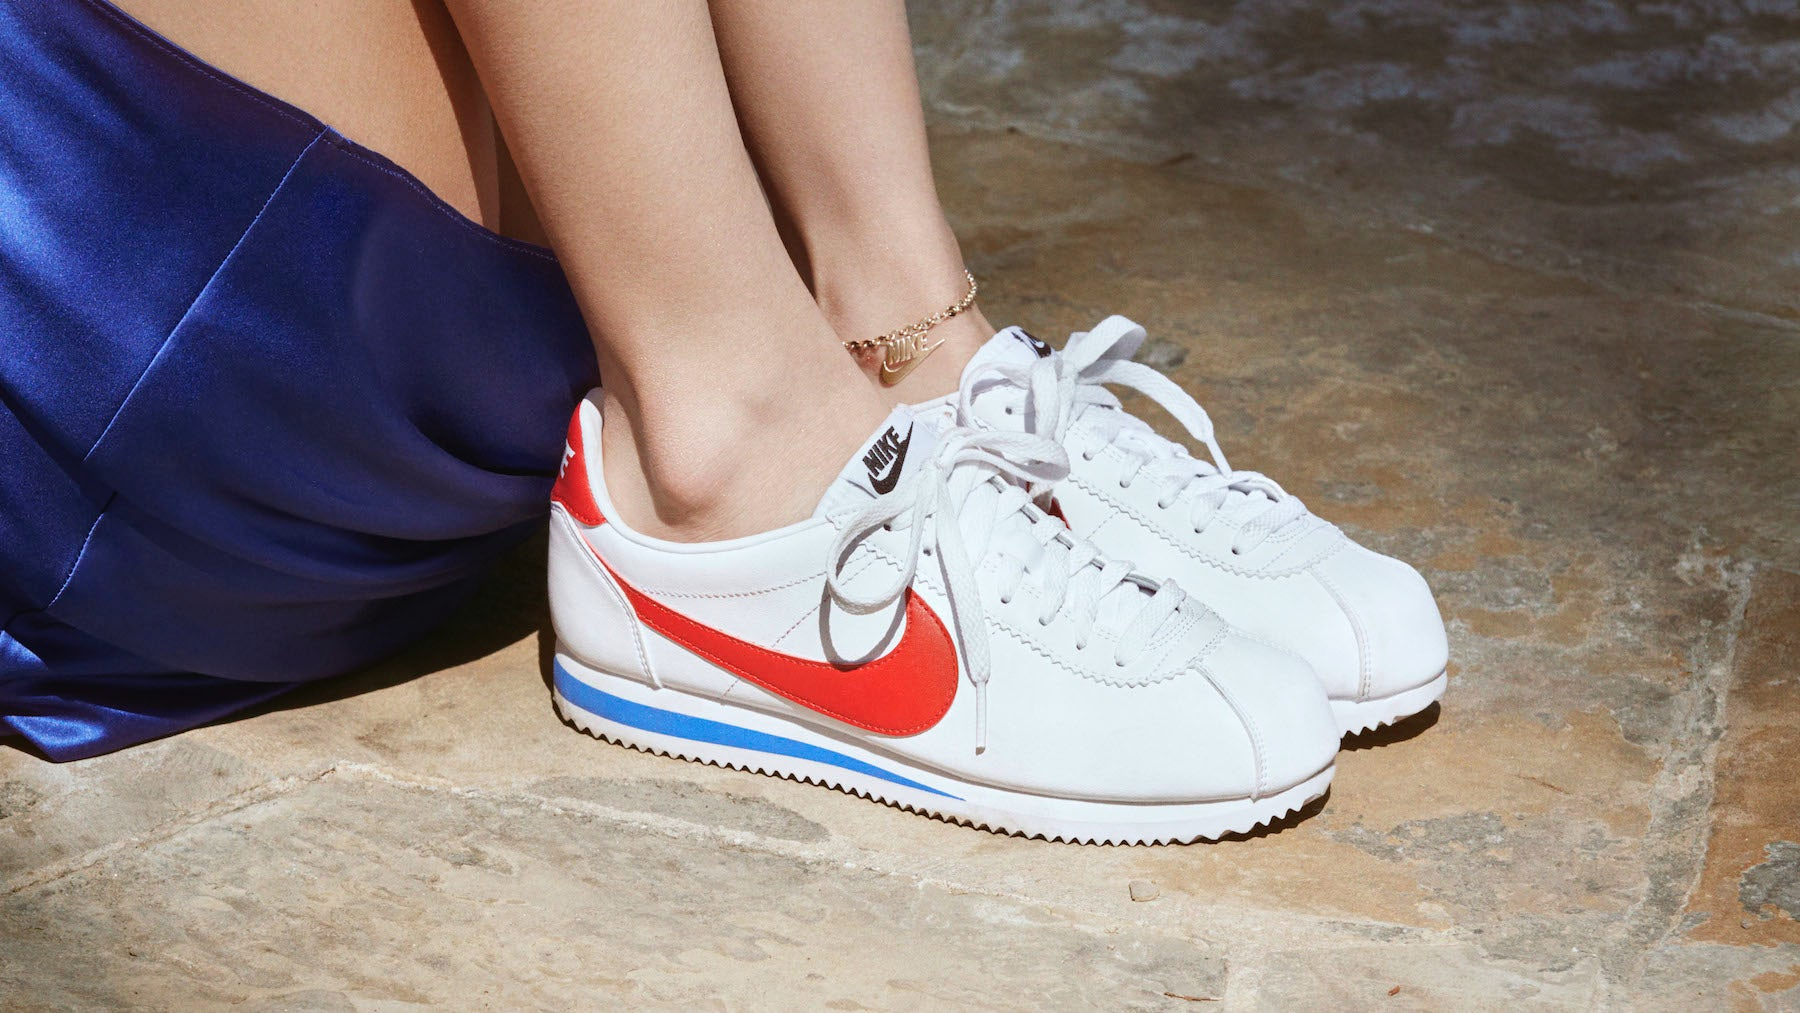 Nike Cortez sneakers   Source: Courtesy